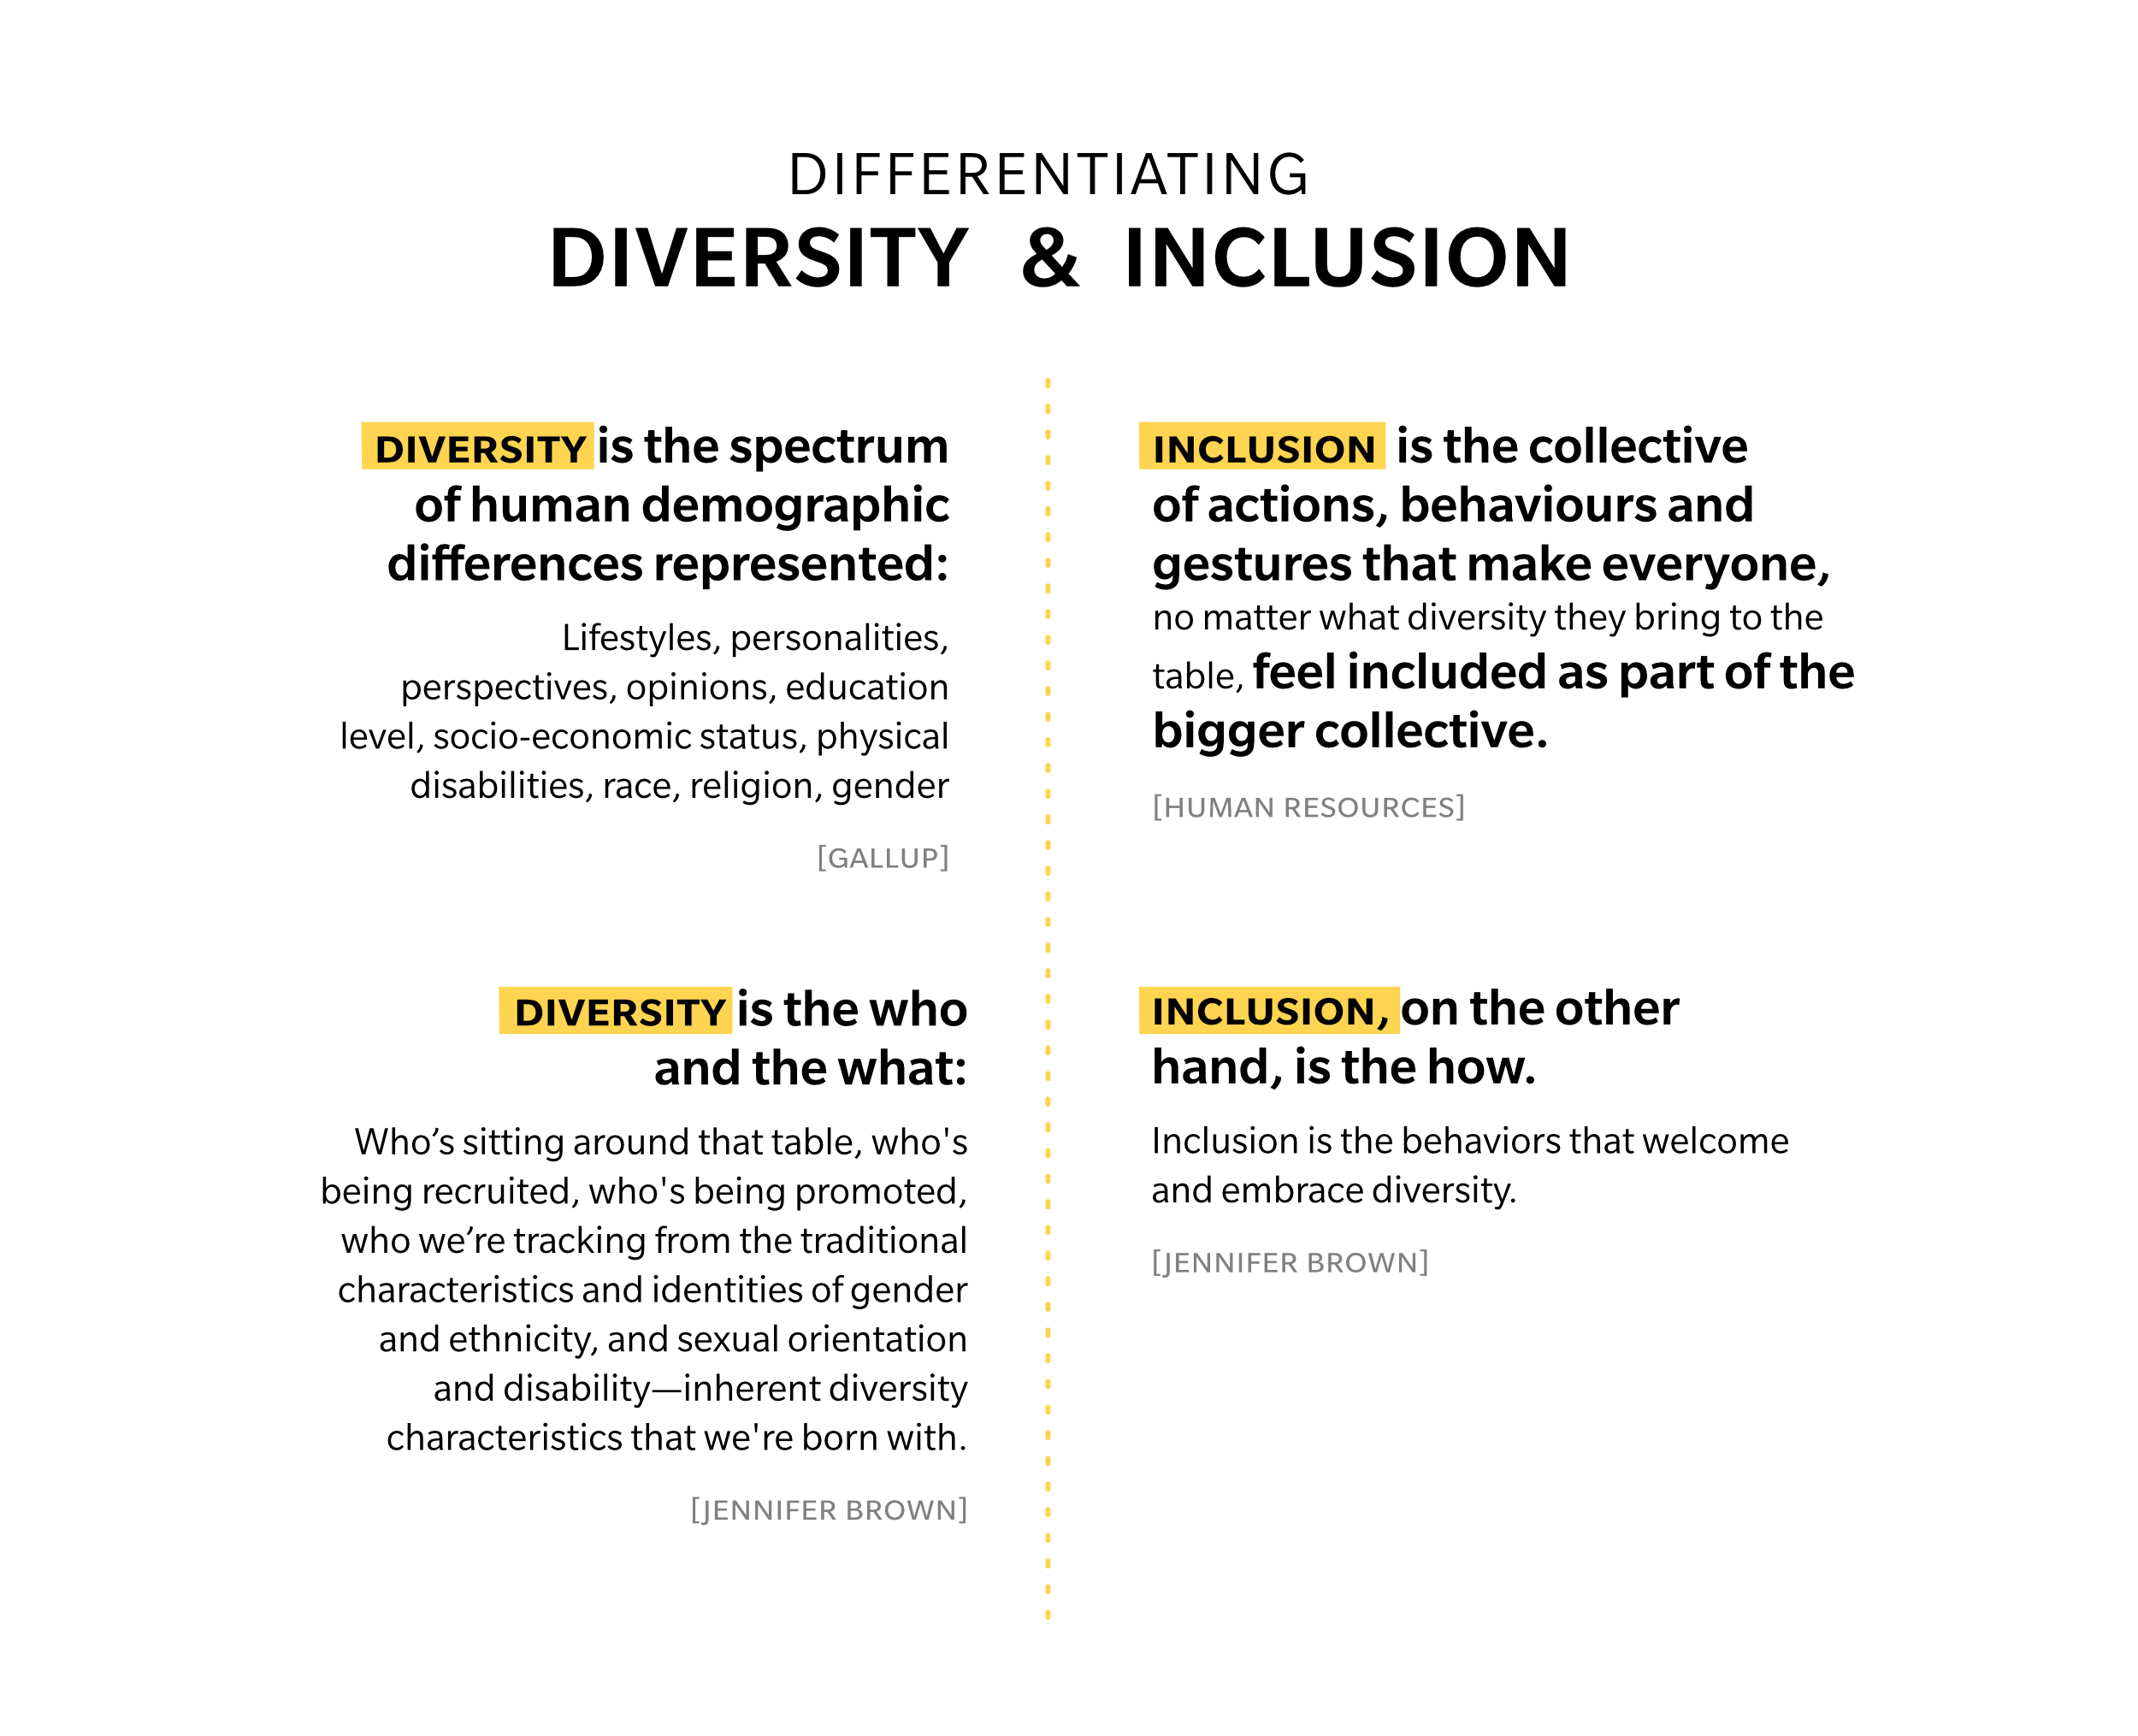 Differentiating Diversity & Inclusion ROHEI1